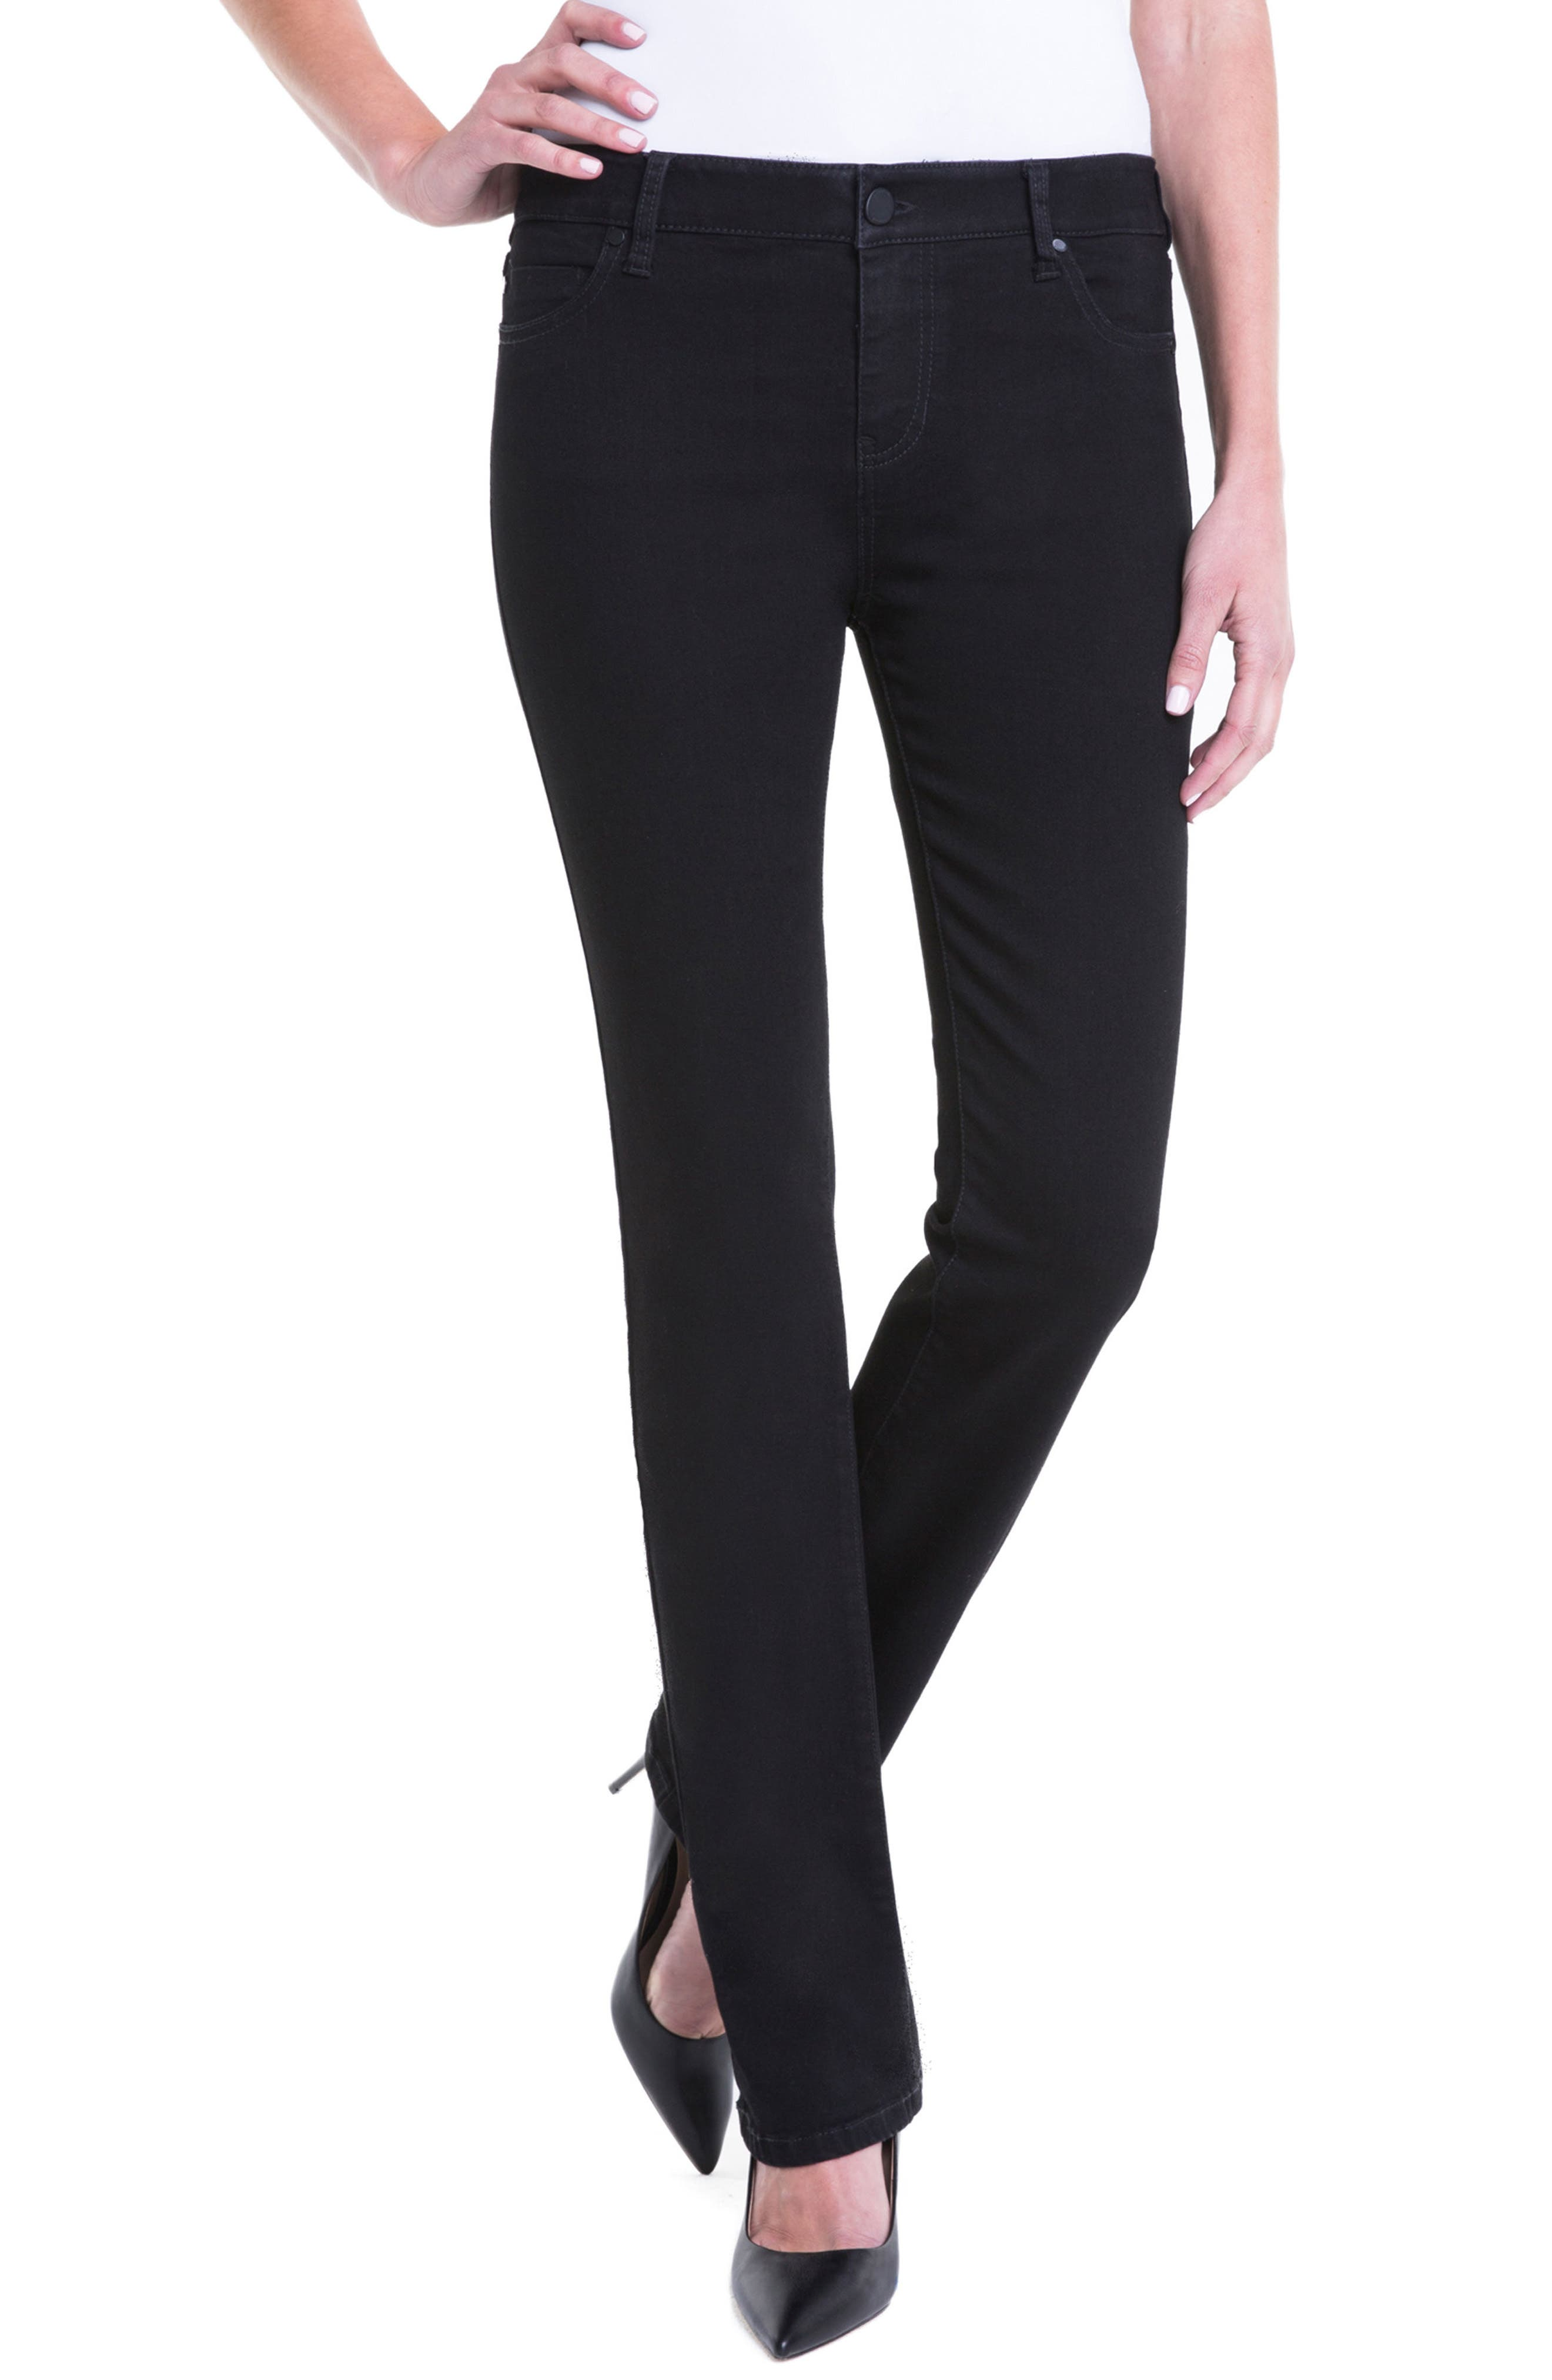 Liverpool Jeans Company Sadie Mid Rise Stretch Straight Jeans (Black Rinse) (Regular & Petite)